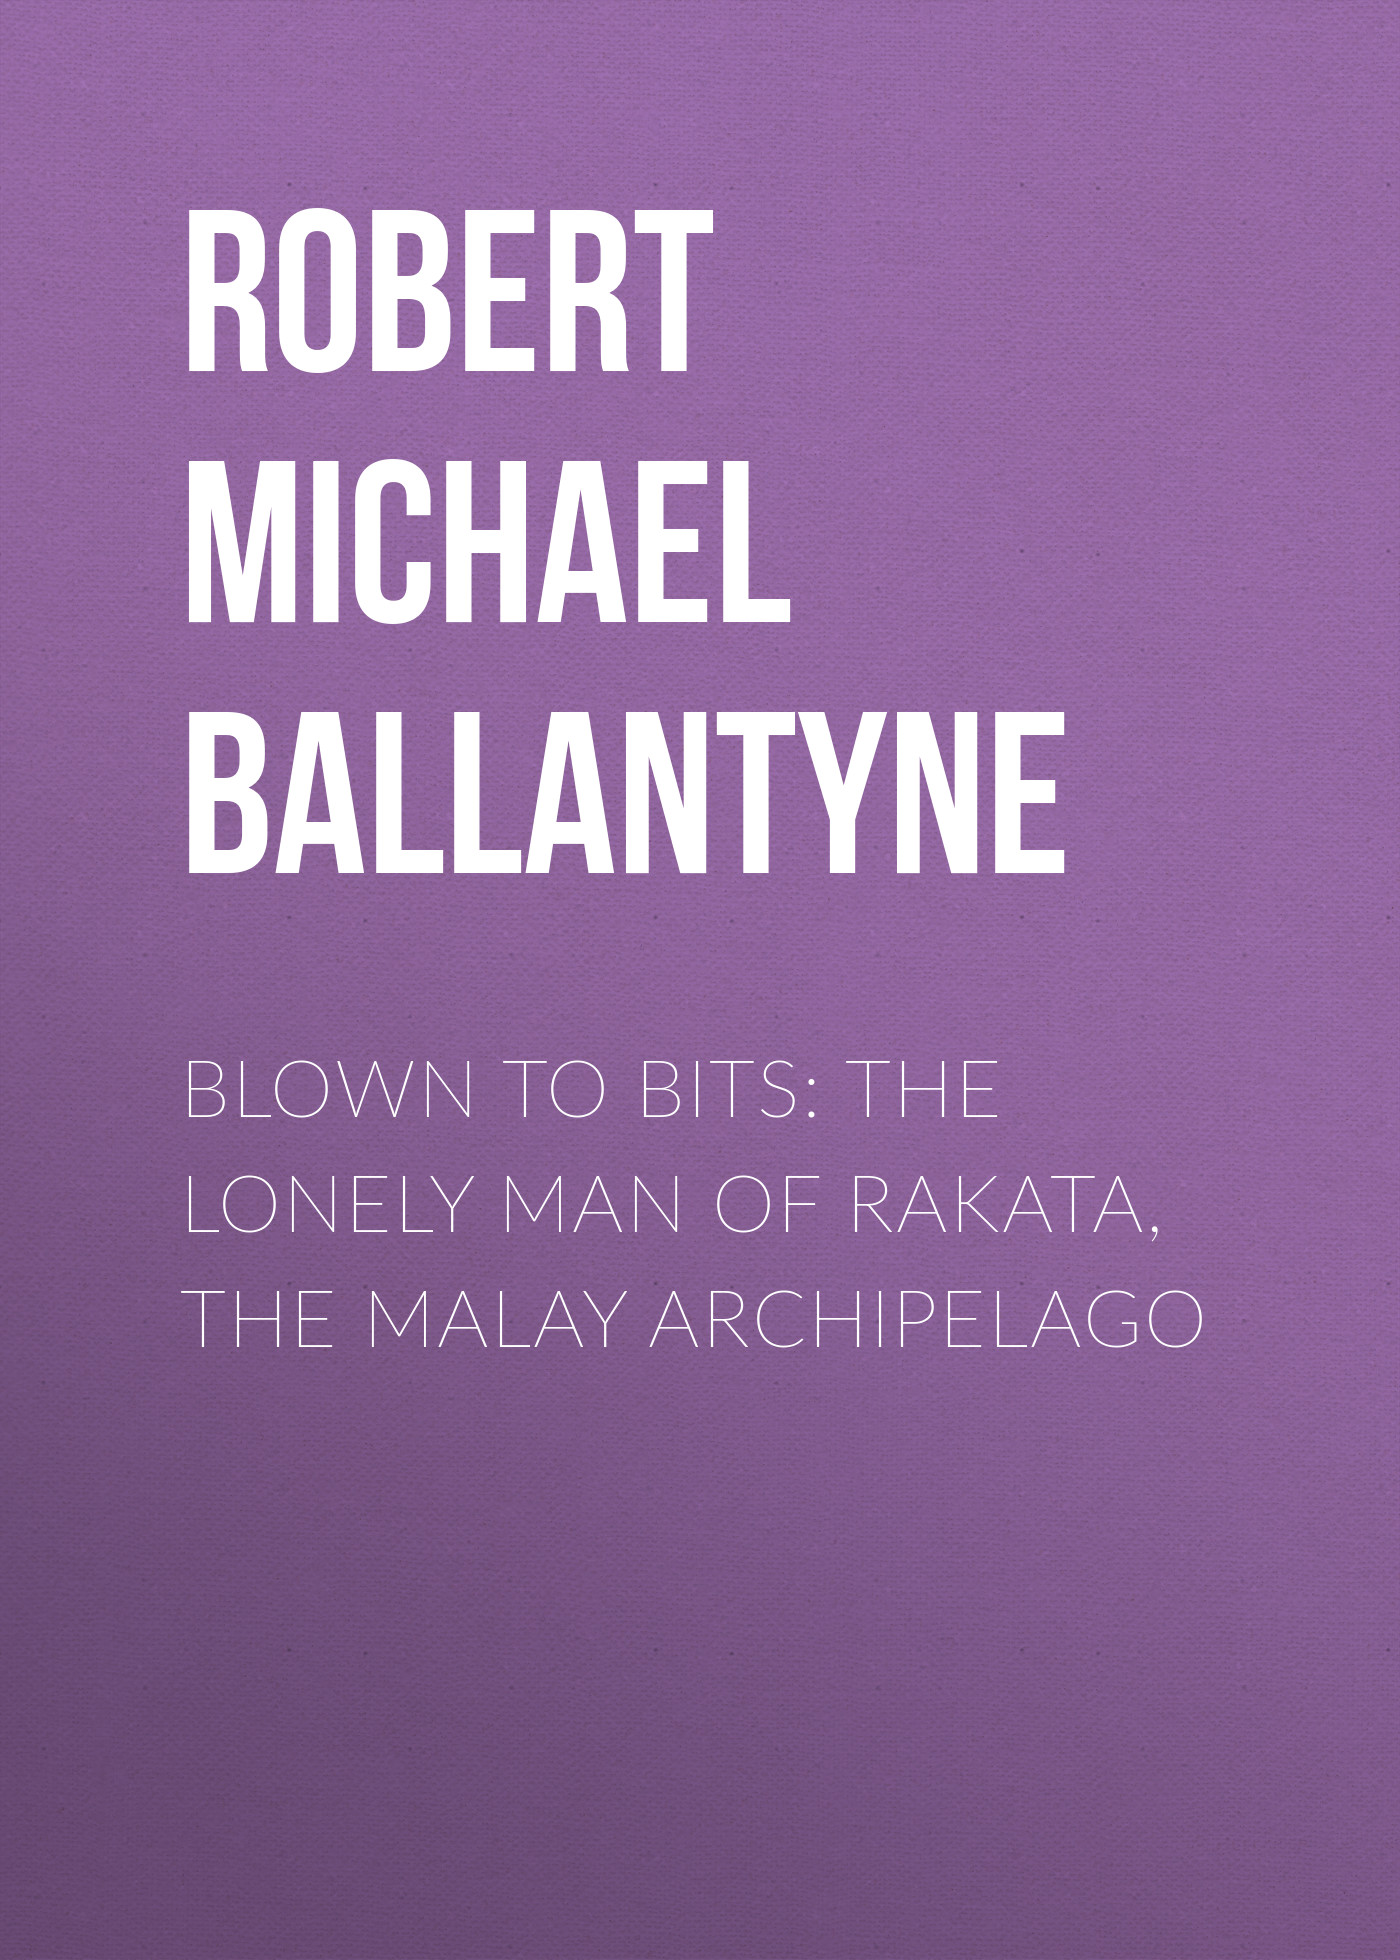 Robert Michael Ballantyne Blown to Bits: The Lonely Man of Rakata, the Malay Archipelago the gulag archipelago 1918 56